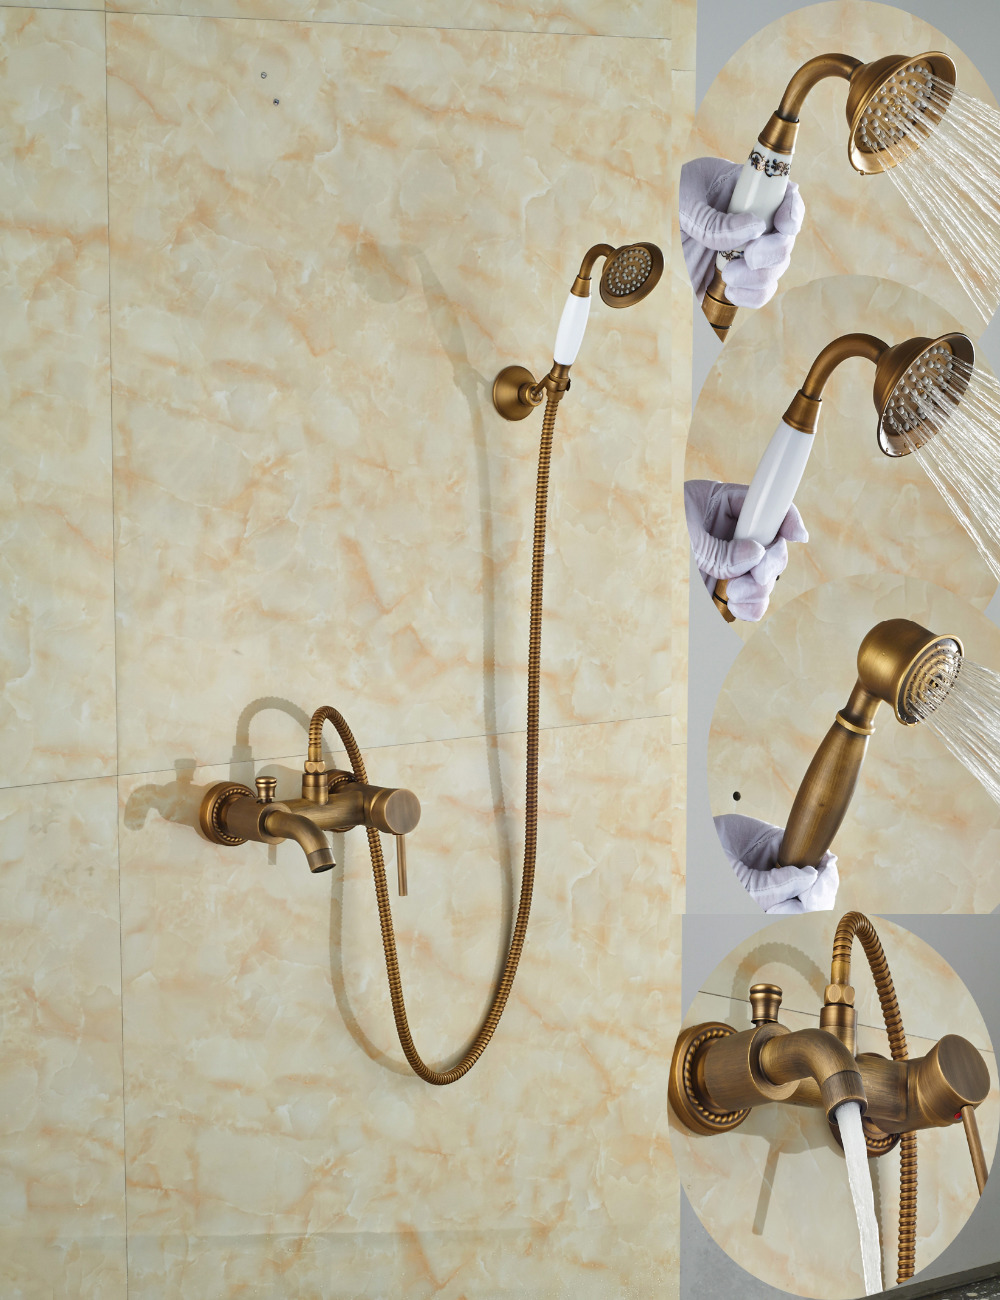 Wholesale And Retail Promotion Wall Mounted Bathroom Tub Faucet Rain Shower Hand Sprayer W/ Tub Spout Mixer Tap Antique Brass polished chrome double cross handles wall mounted bathroom clawfoot bathtub tub faucet mixer tap w hand shower atf902